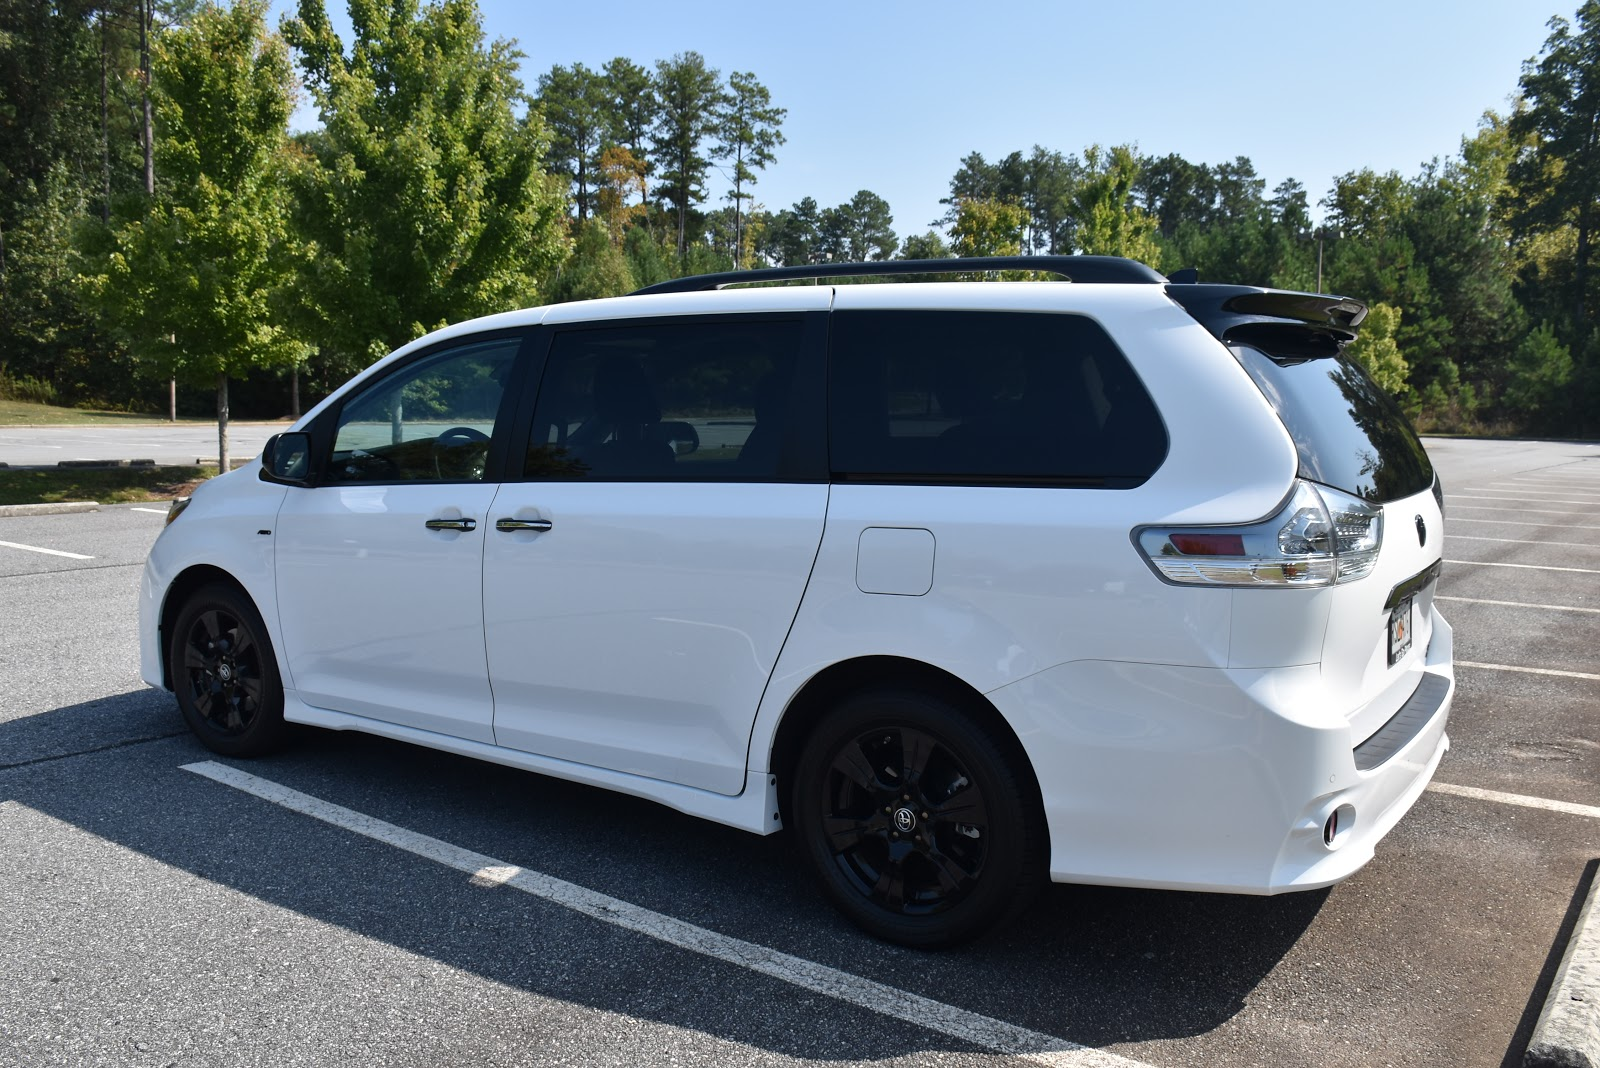 The Sporty Van: Top 6 Things I Loved About the 2020 Toyota Sienna SE